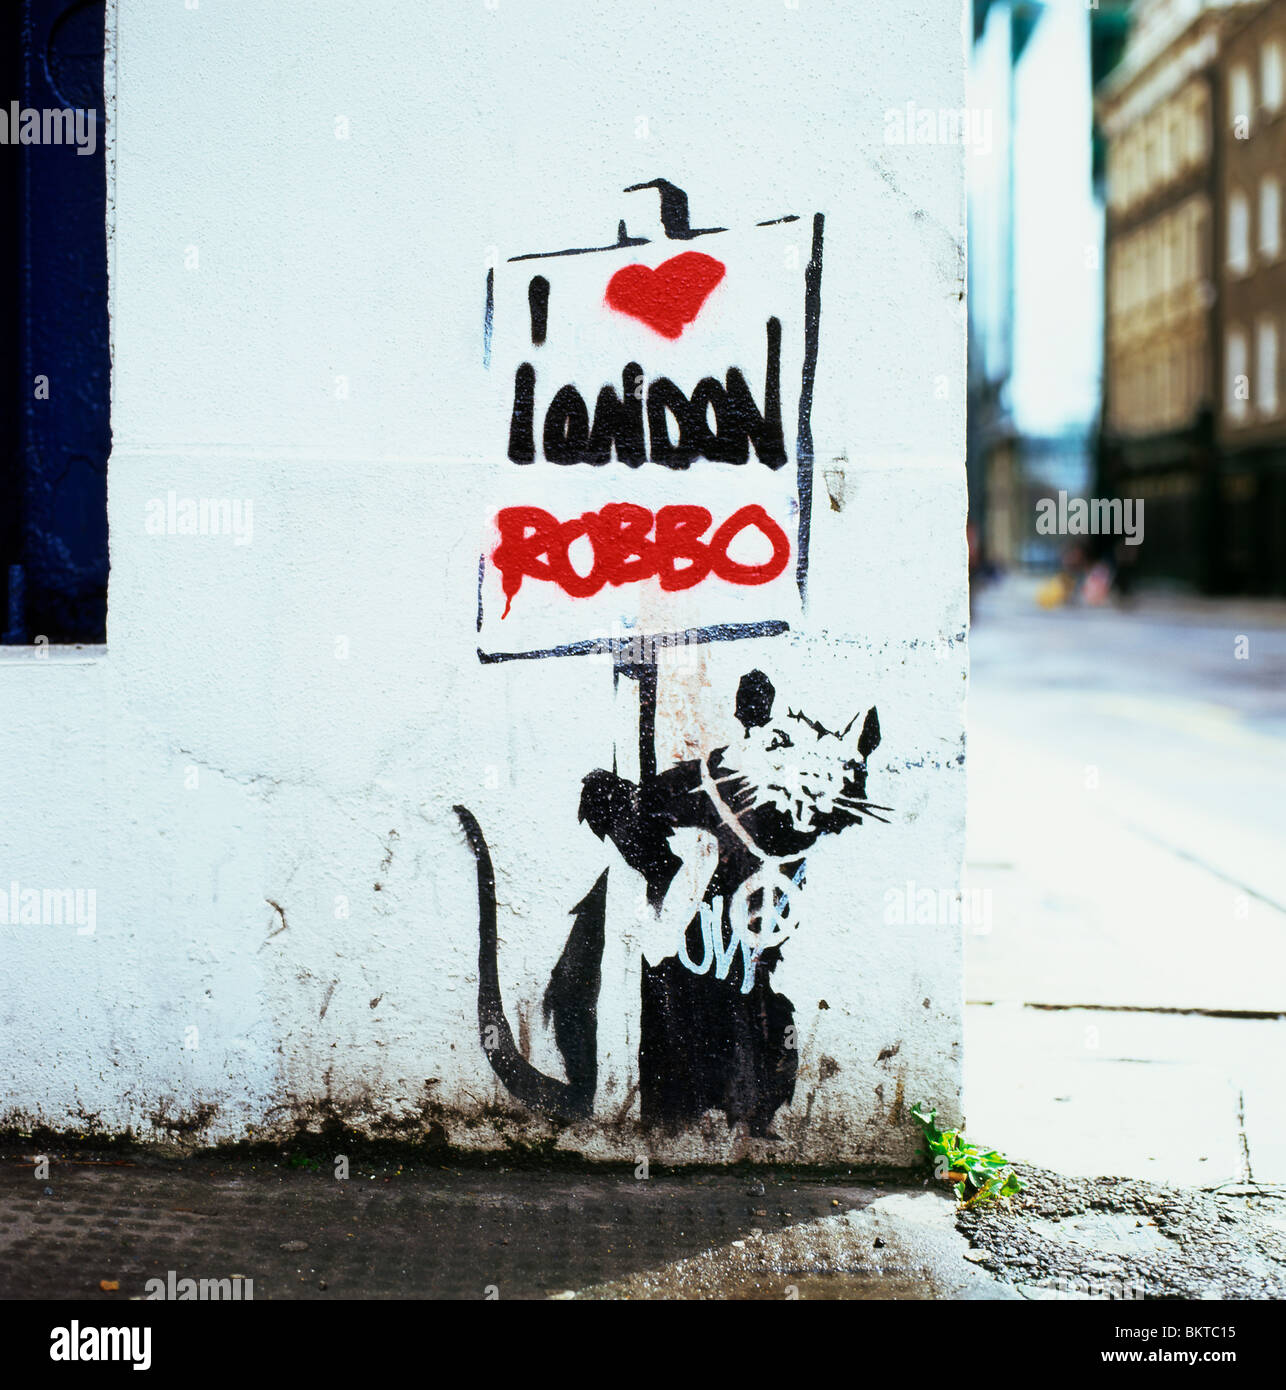 A Banksy stencil of a rat that once said 'London doesn't work' altered to say 'I love London' - Stock Image